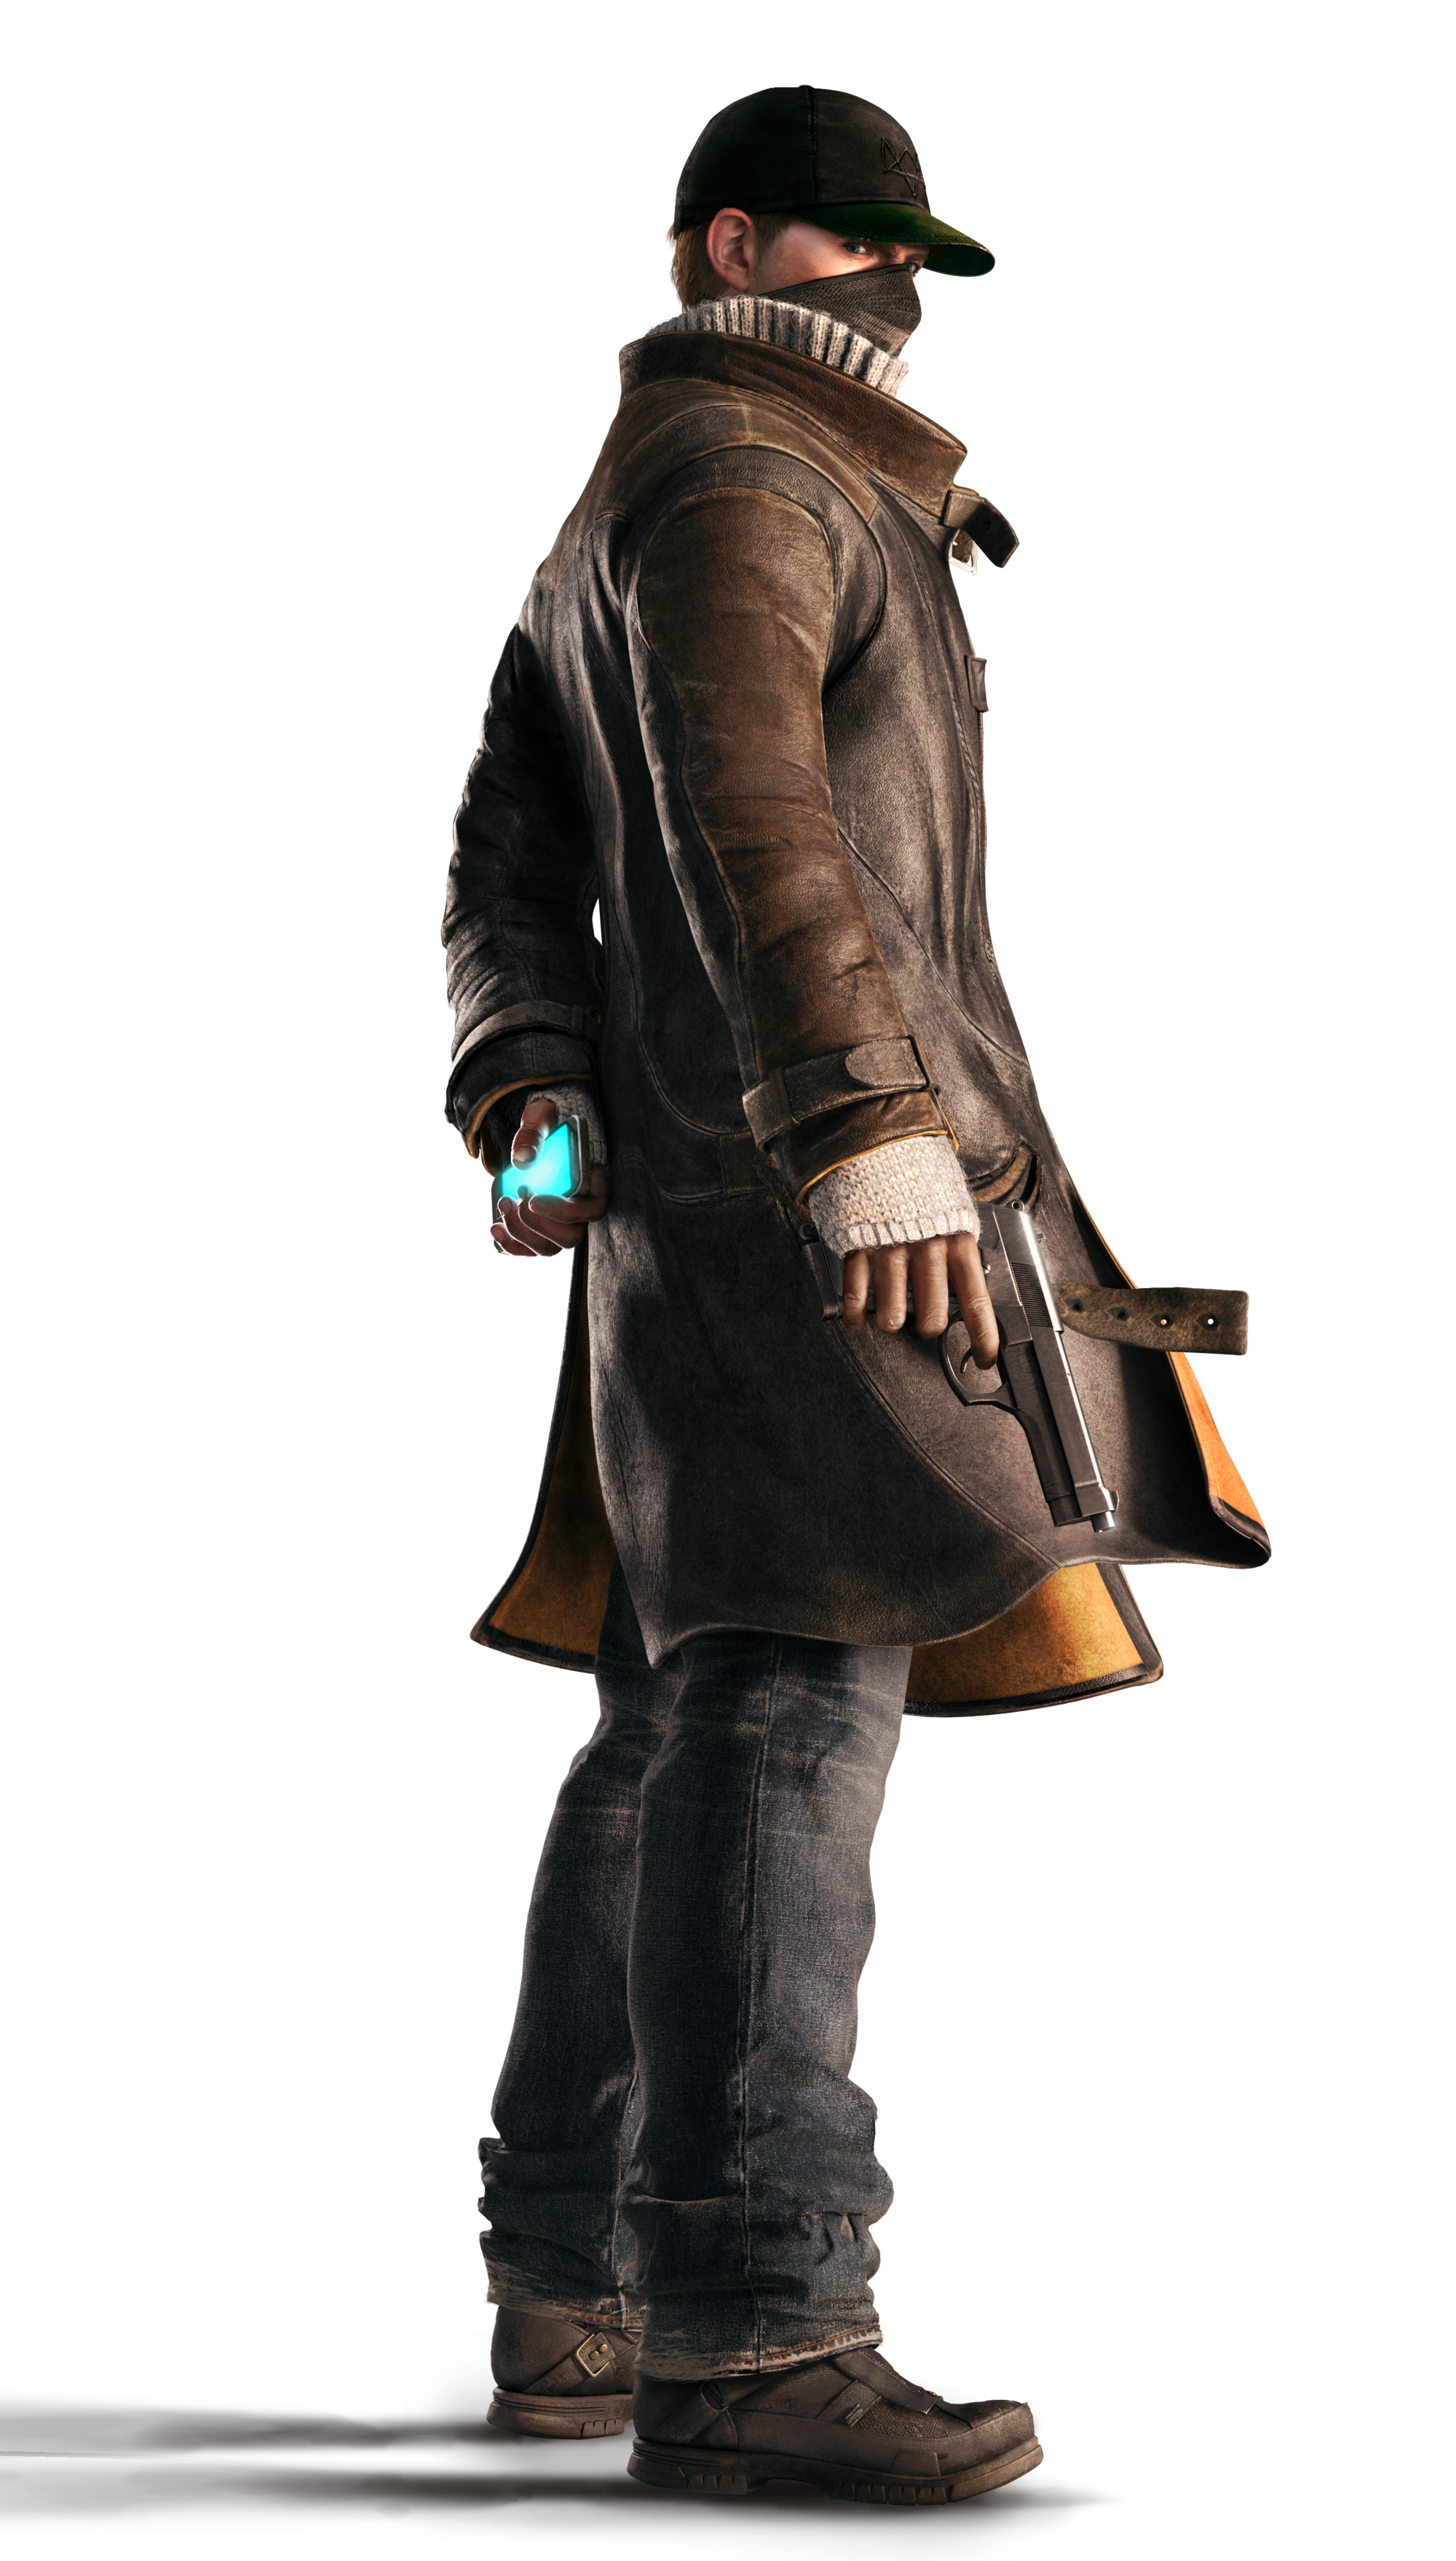 Watch_dogs png. Category characters in watch